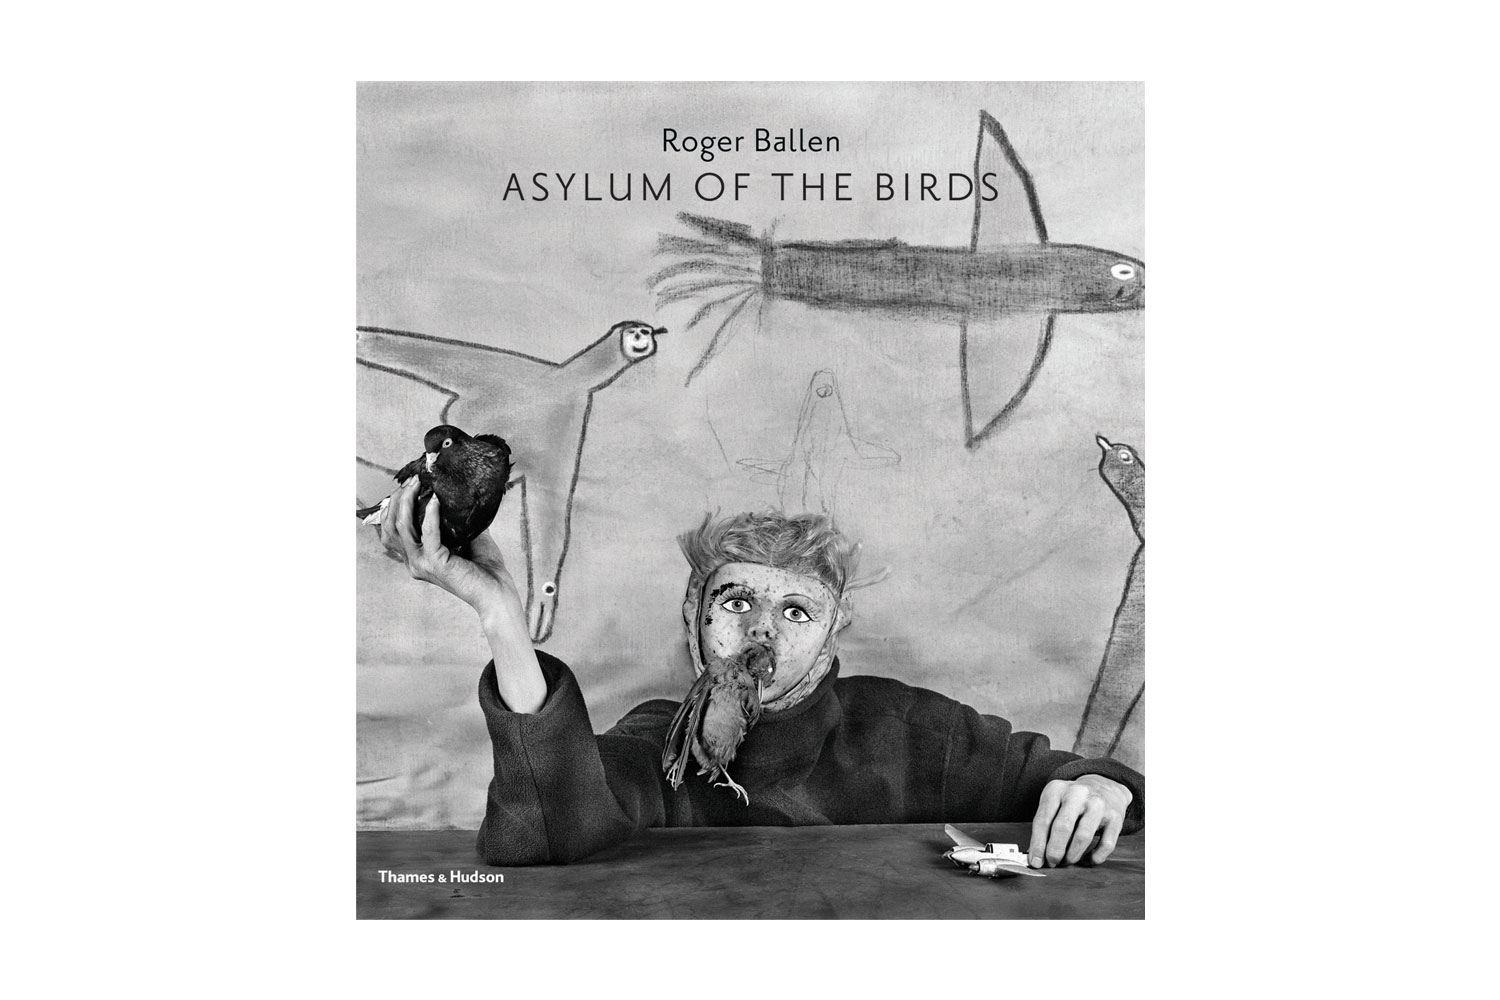 Roger Ballen's Asylum of the Birds, published by Thames & Hudson                               Forever inhabiting the darker depths, Ballen's latest subject is an abandoned house in Johannesburg haunted by a cast of quasi-anonymous refugees and a flock of unruly birds.